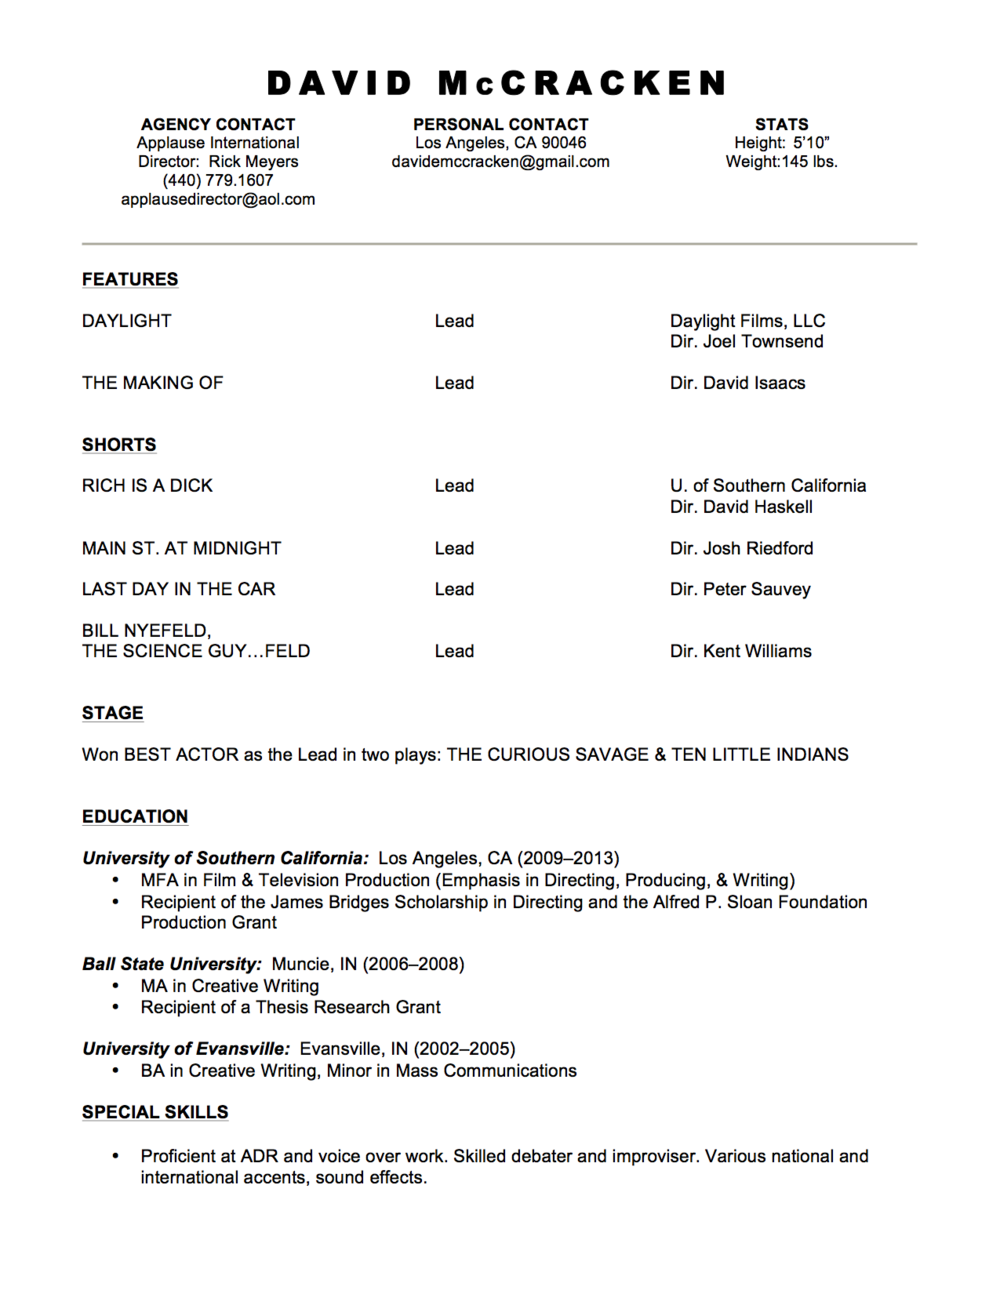 David McCracken Acting Resume (March 2014).png